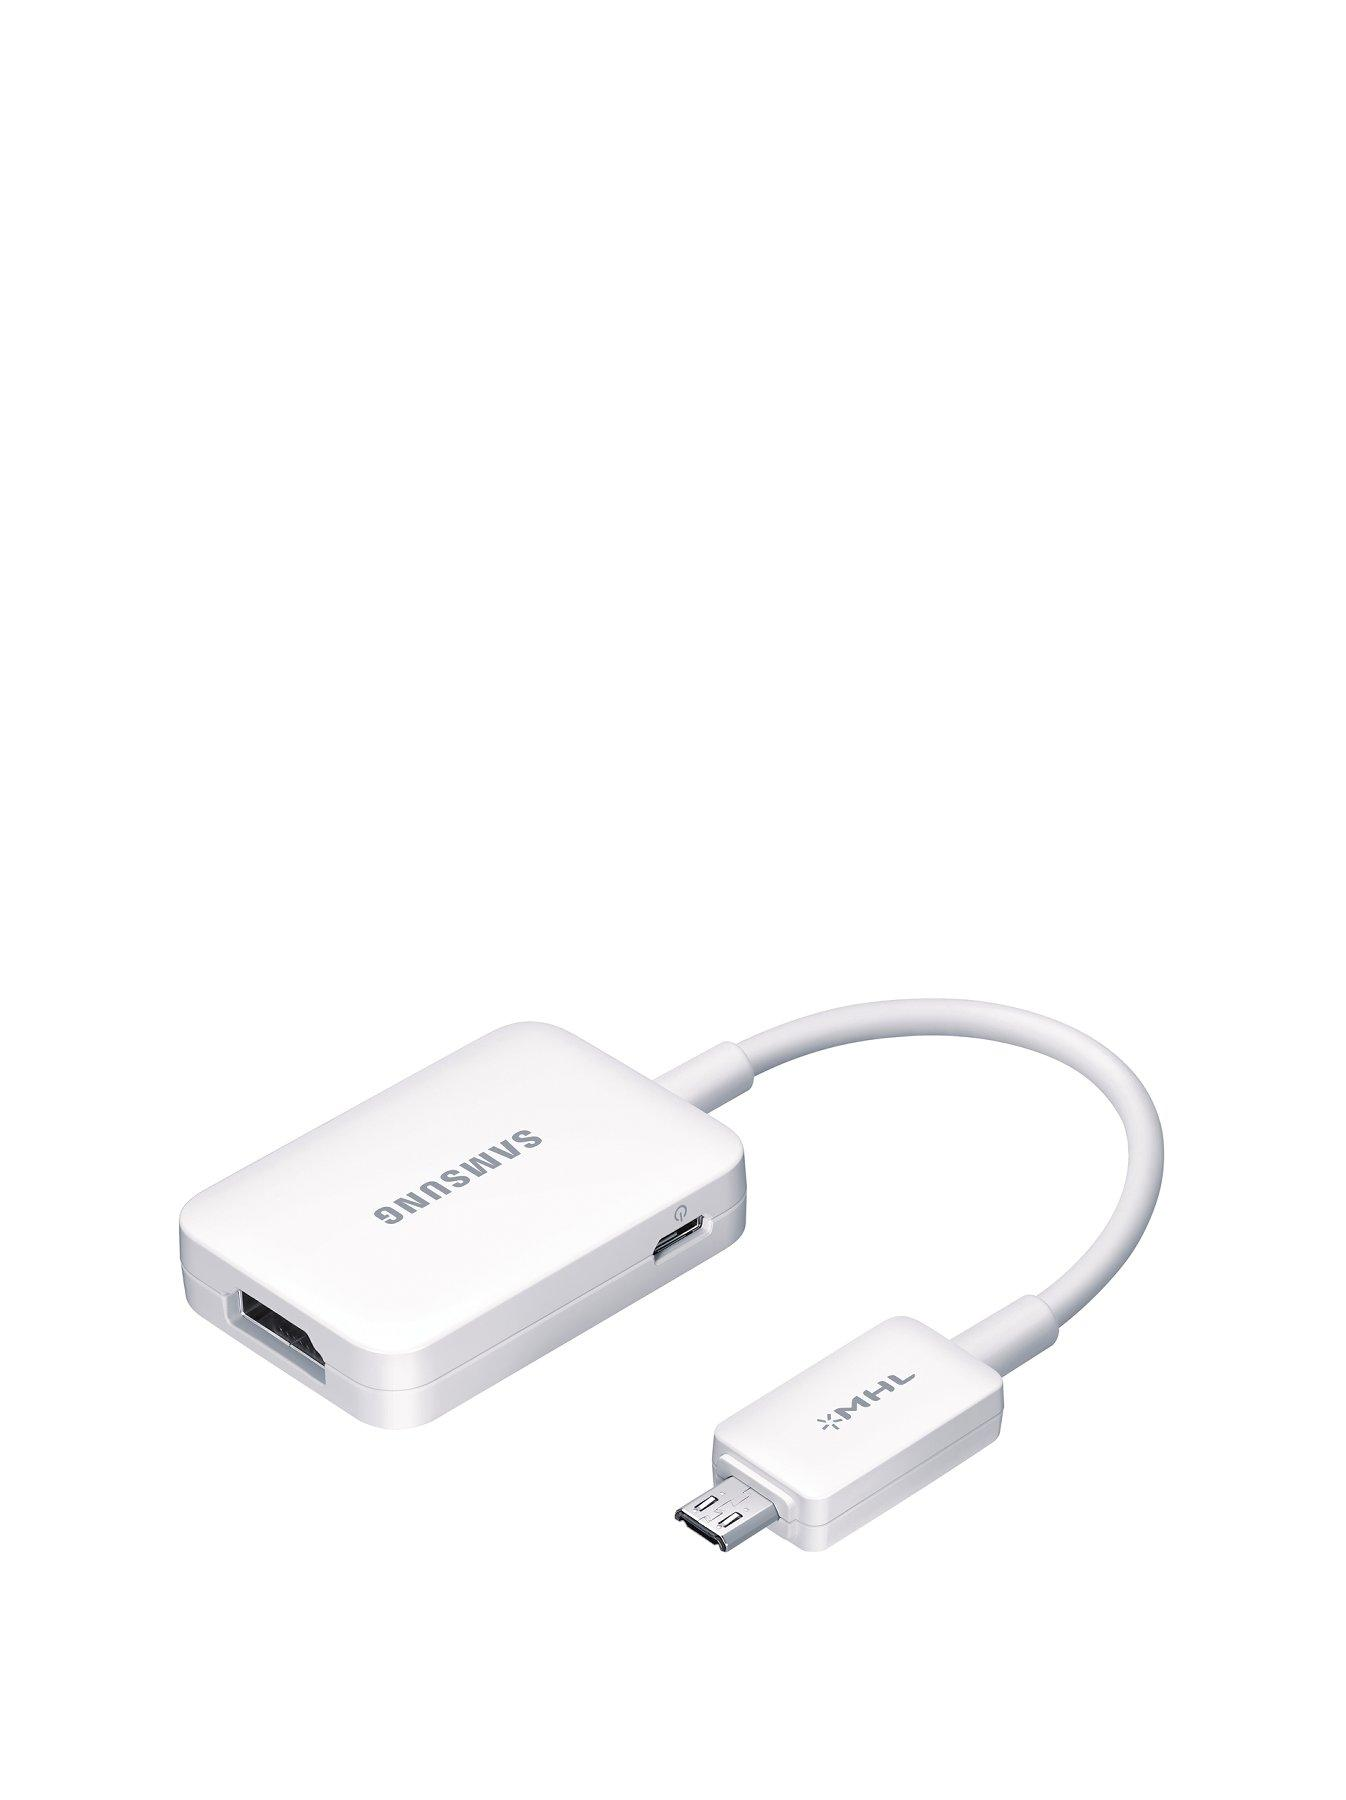 Samsung Galaxy S4 HDTV Adaptor - White